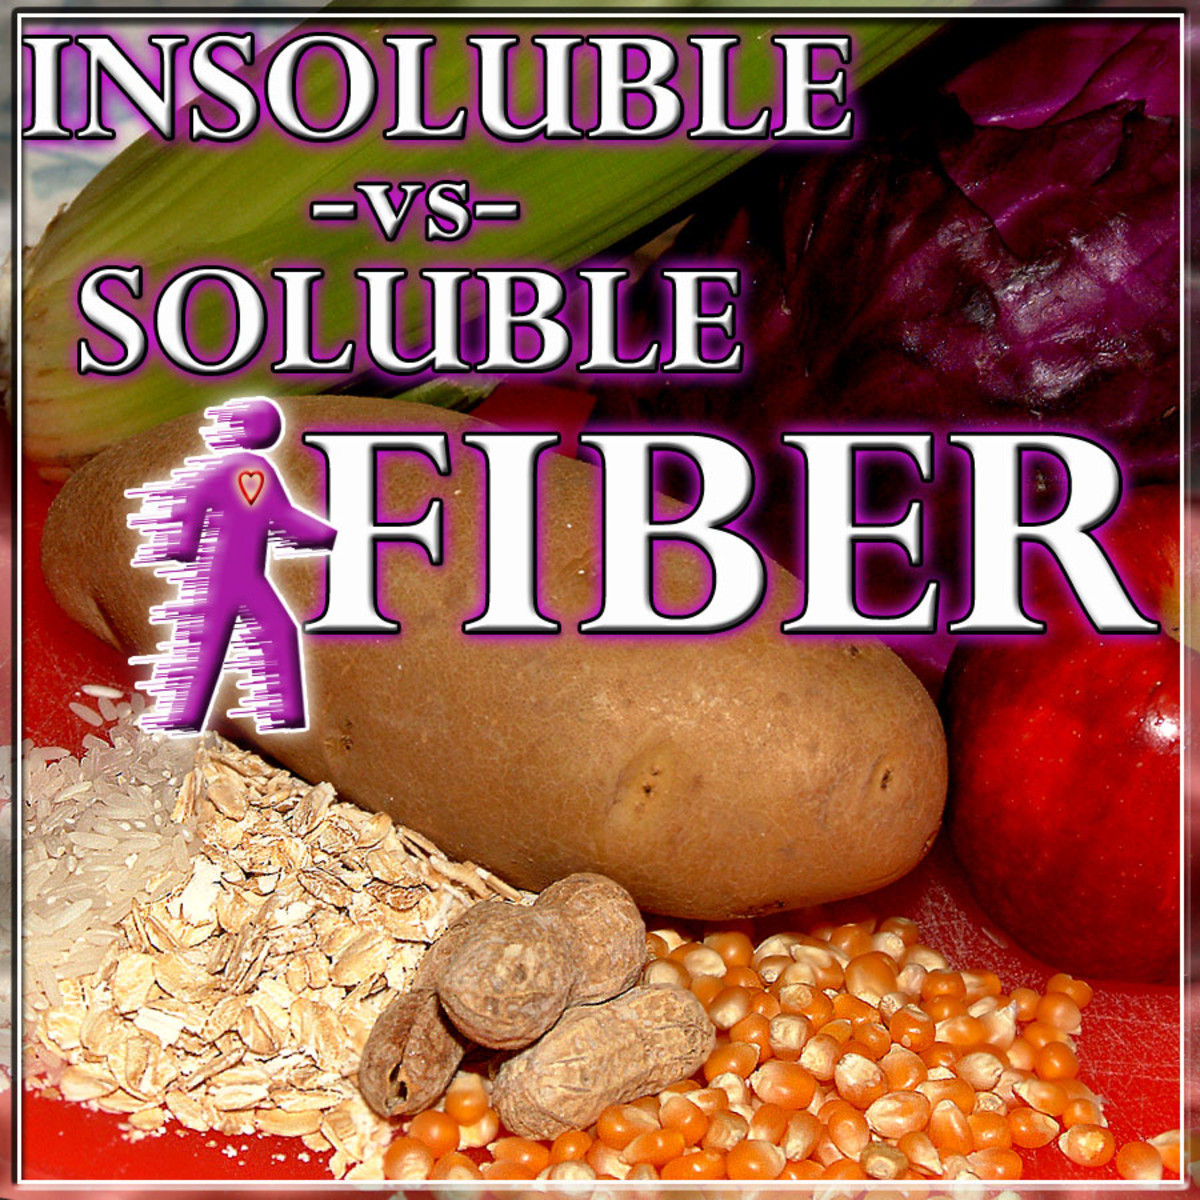 Fiber is found in two dietary types: Soluble and Insoluble. Each offers healthy benefits.